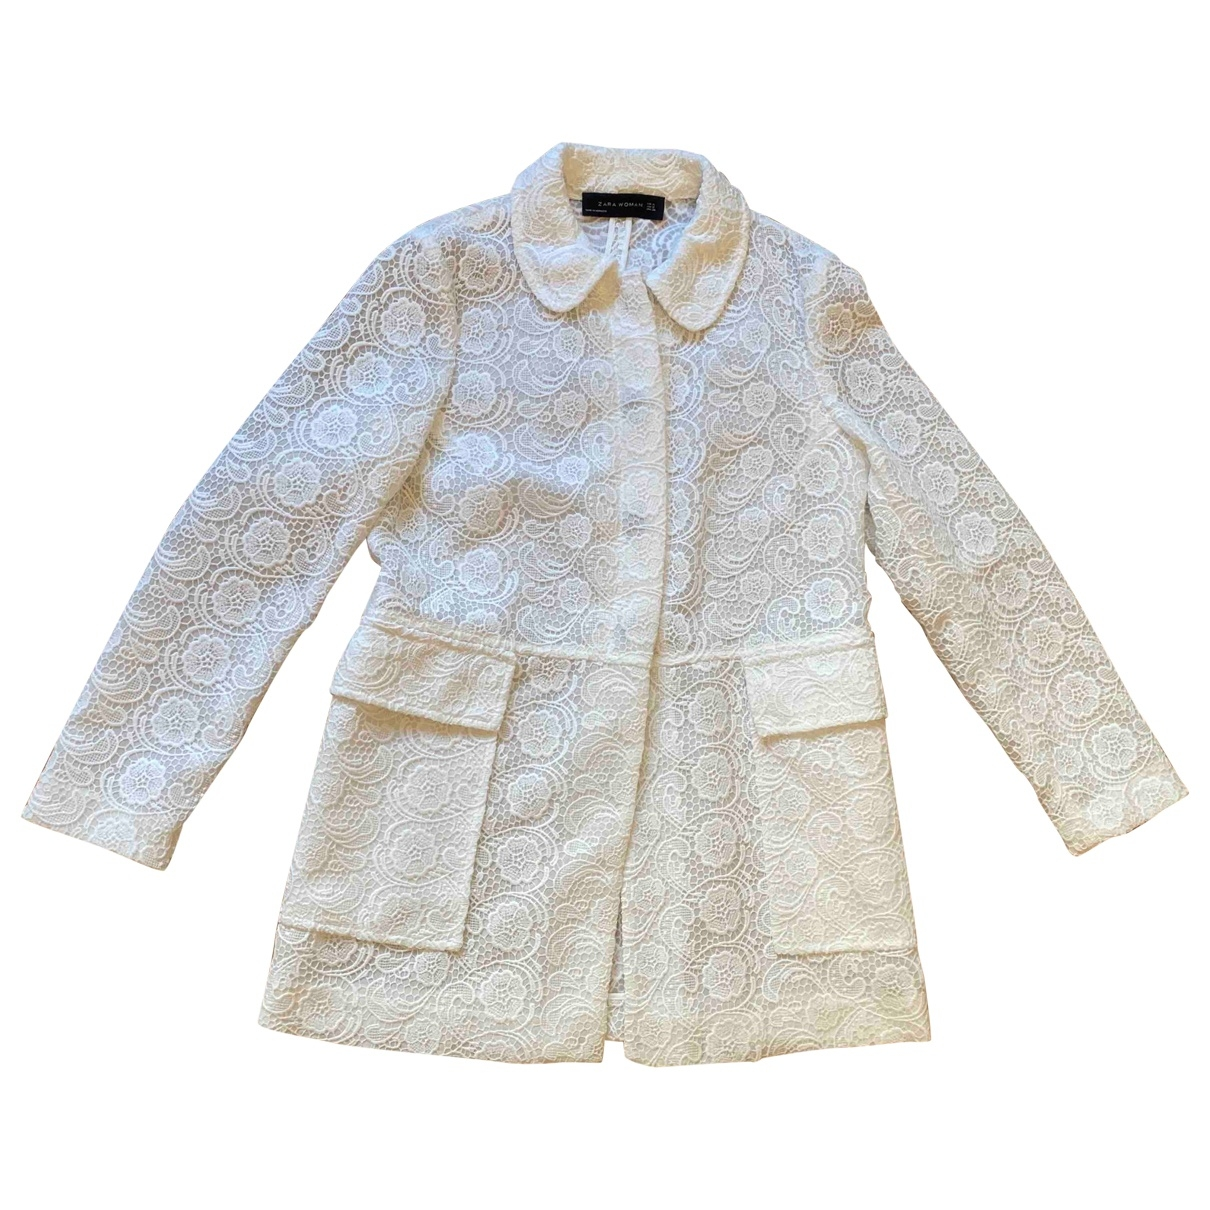 Zara \N White jacket for Women S International